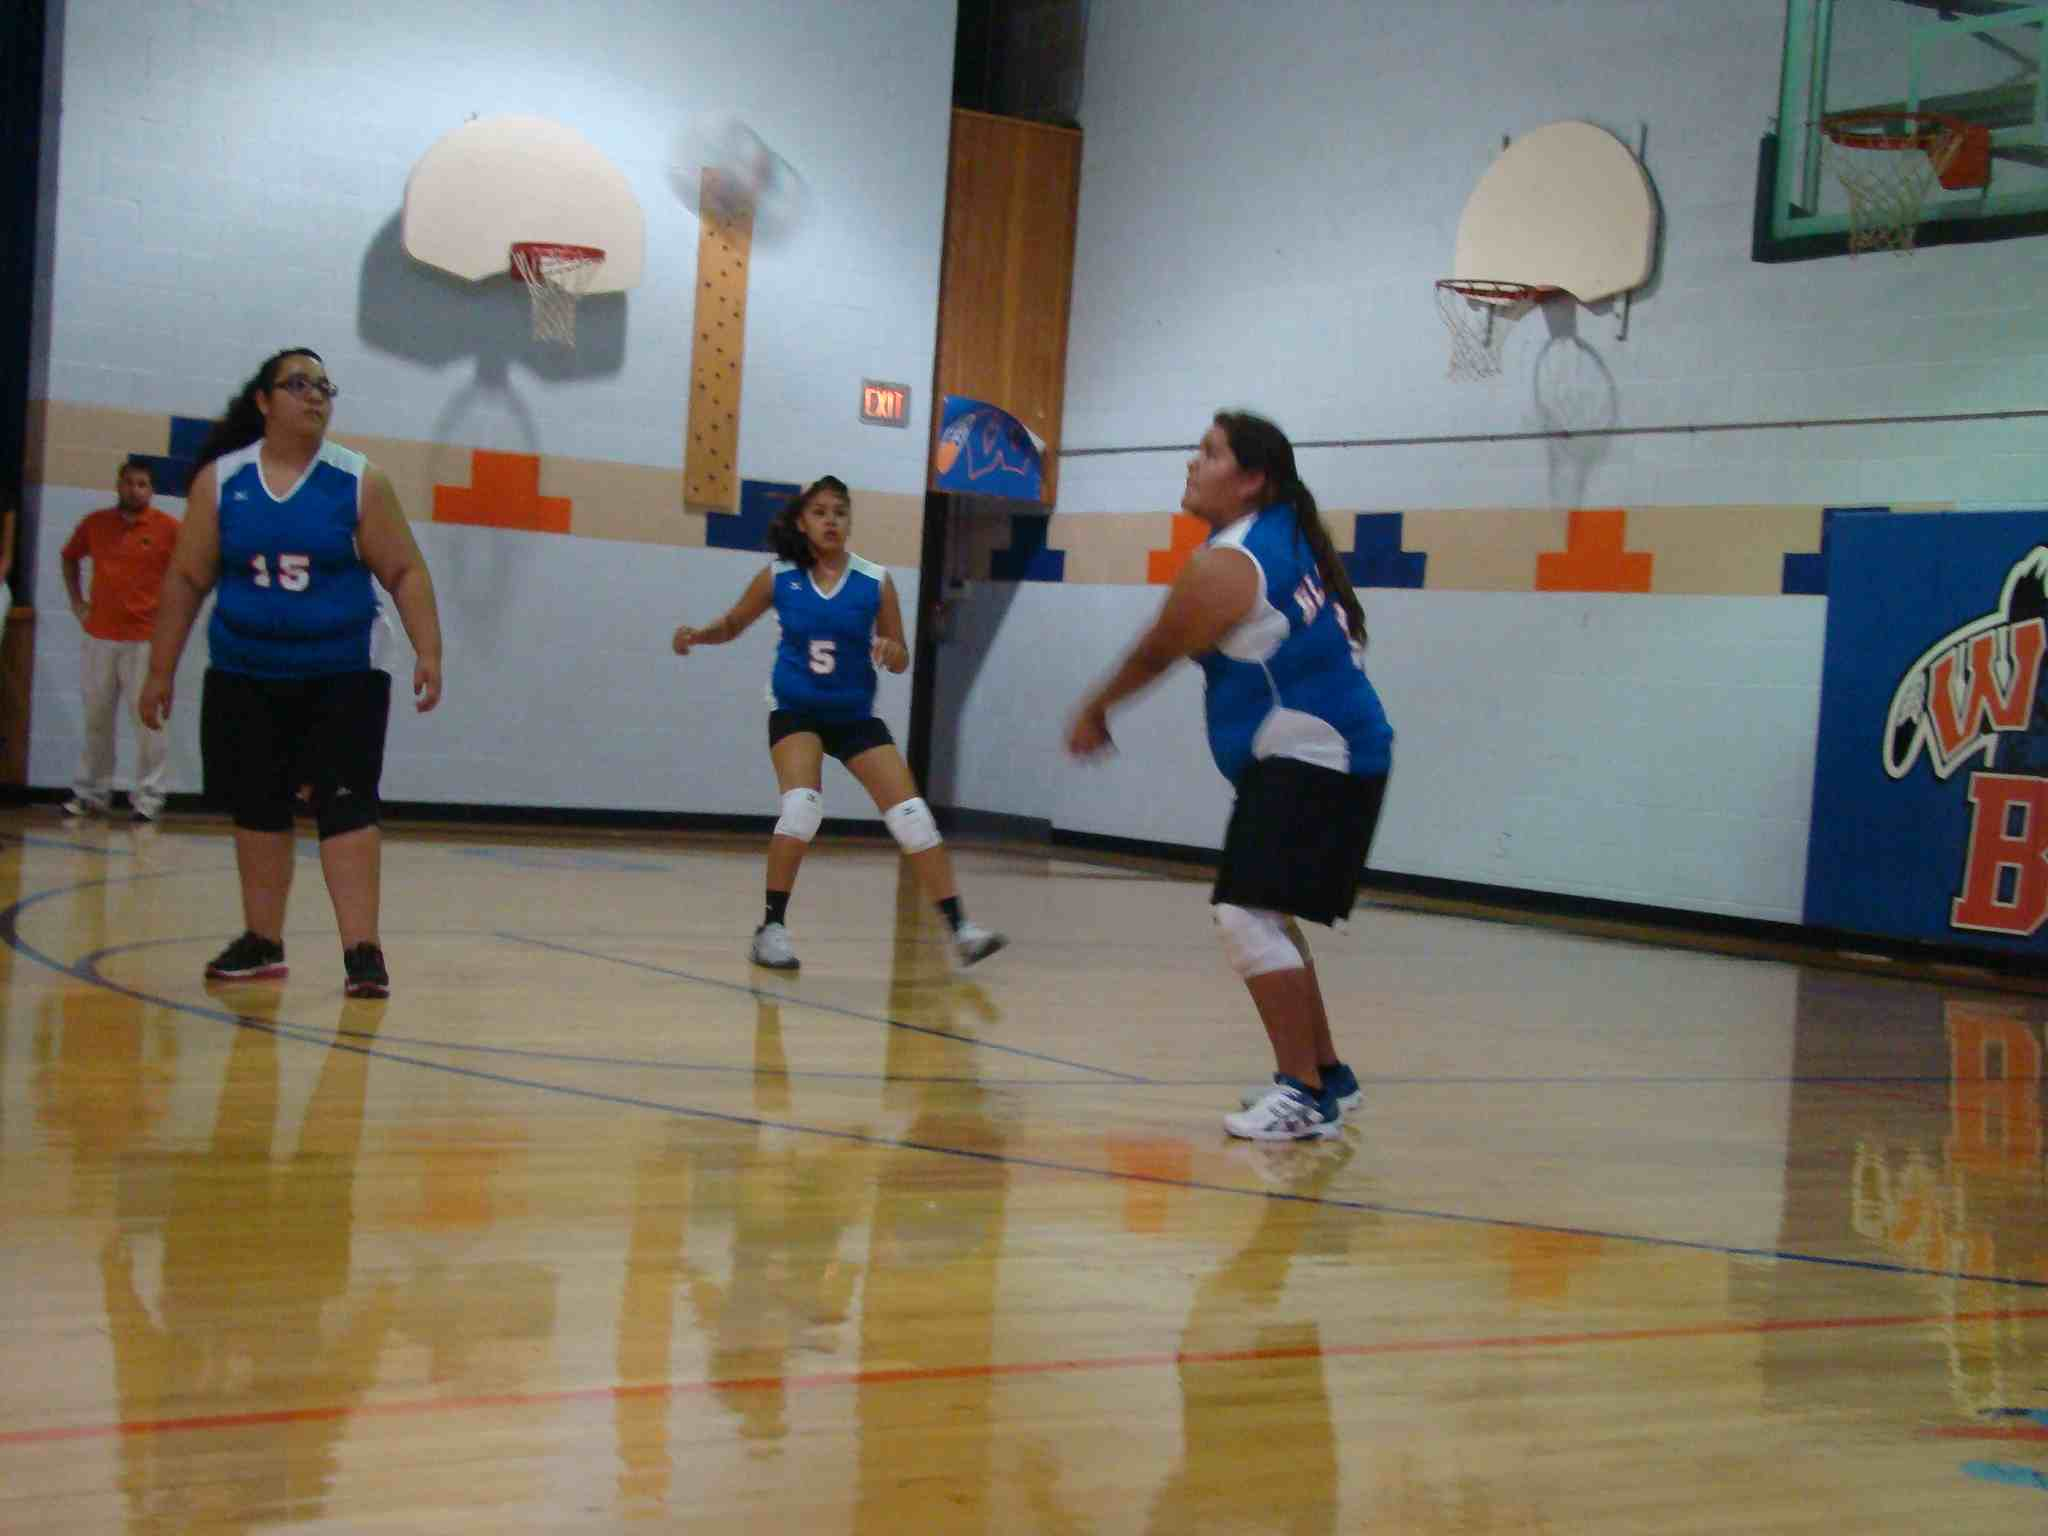 Alondra bumping the ball